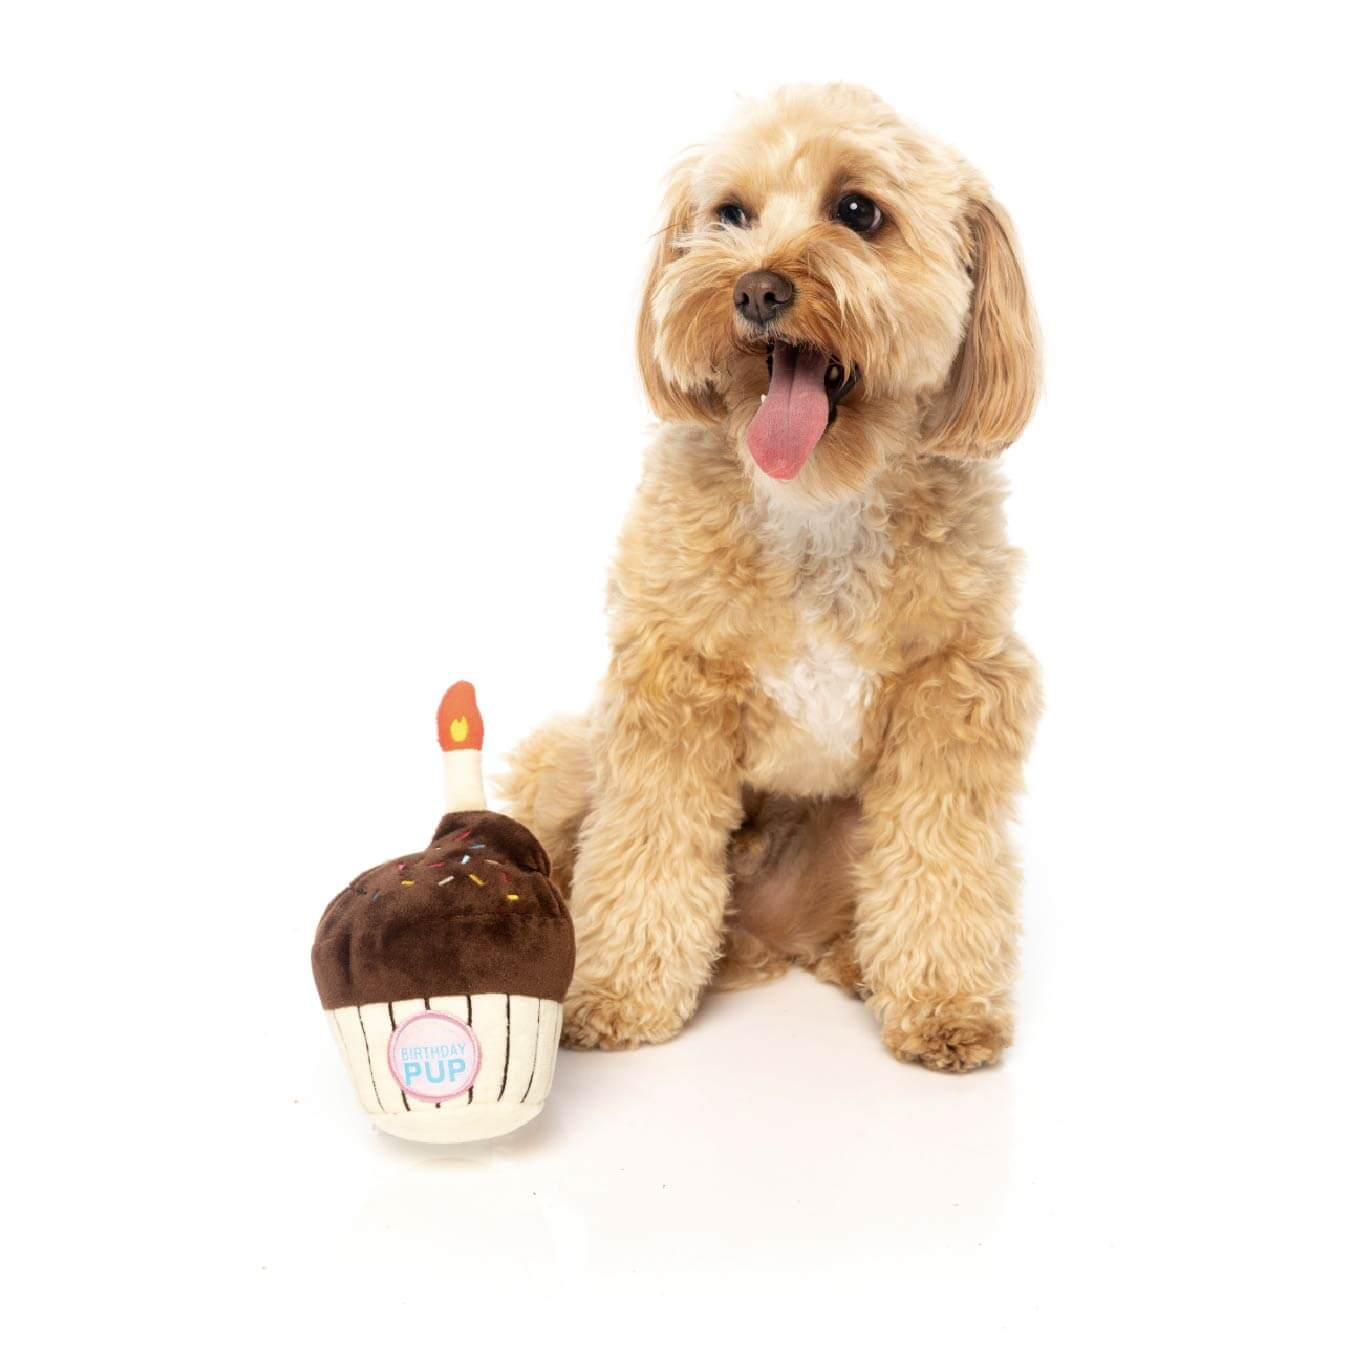 FuzzYard Birthday Cupcake Dog Toy - Dogs, FuzzYard, New, Toys - Shop Vanillapup